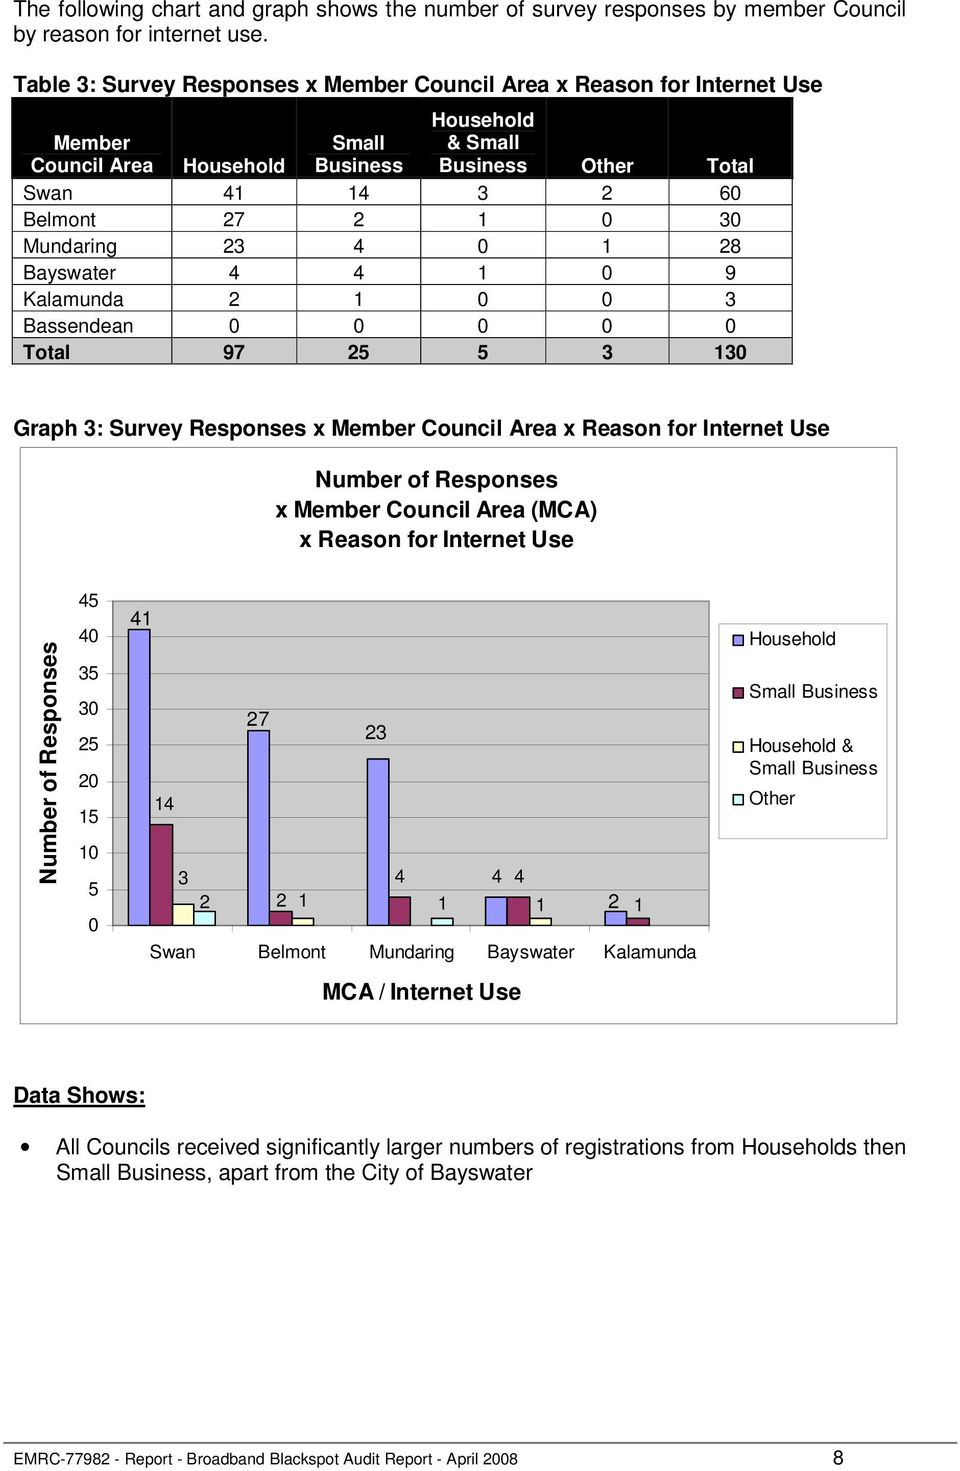 Bayswater 4 4 1 0 9 Kalamunda 2 1 0 0 3 Bassendean 0 0 0 0 0 Total 97 25 5 3 130 Graph 3: Survey Responses x Member Council Area x Reason for Internet Use Number of Responses x Member Council Area